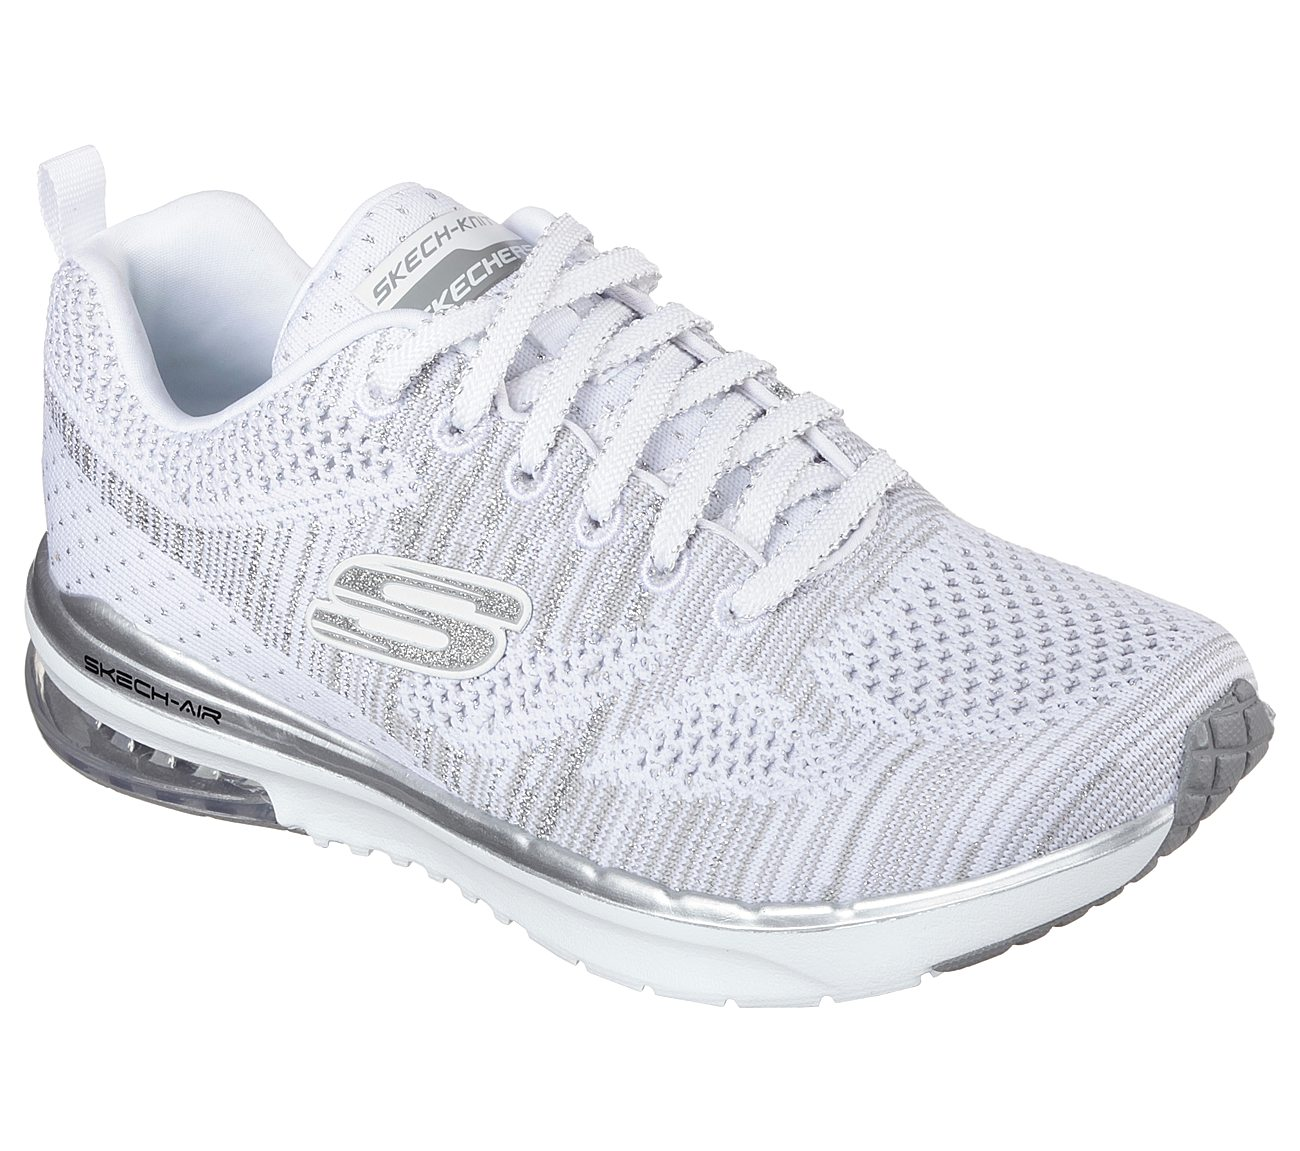 Skechers Air Infinity, Women's Fitness Shoes